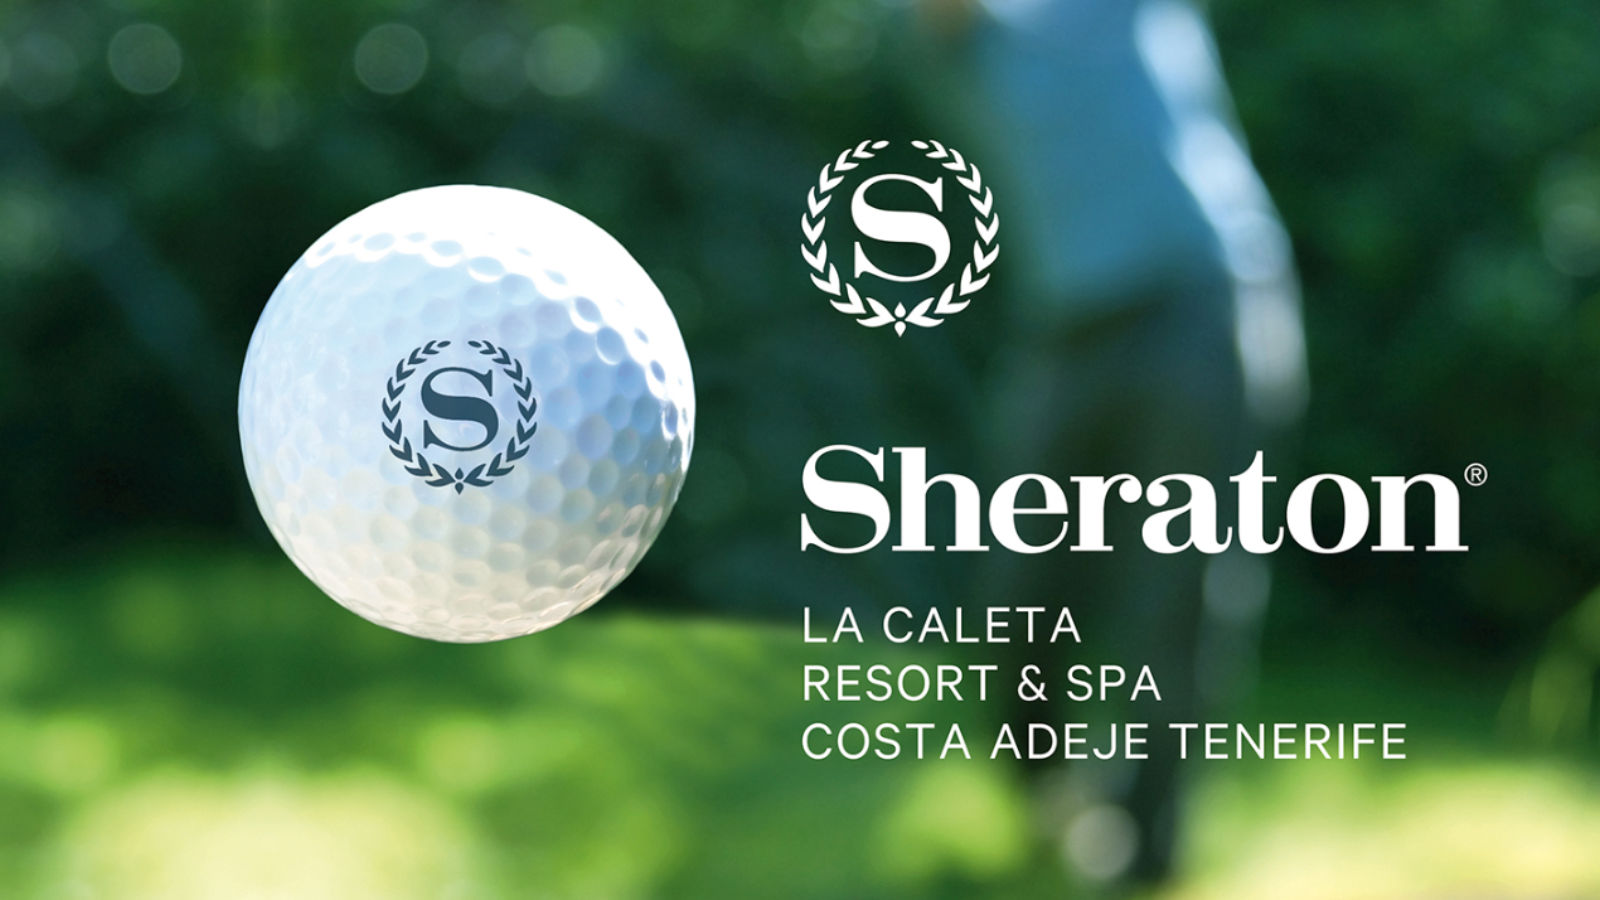 VI GRAND GOLF TOURNAMENT COSTA ADEJE. SHERATON LA CALETA RESORT & SPA.